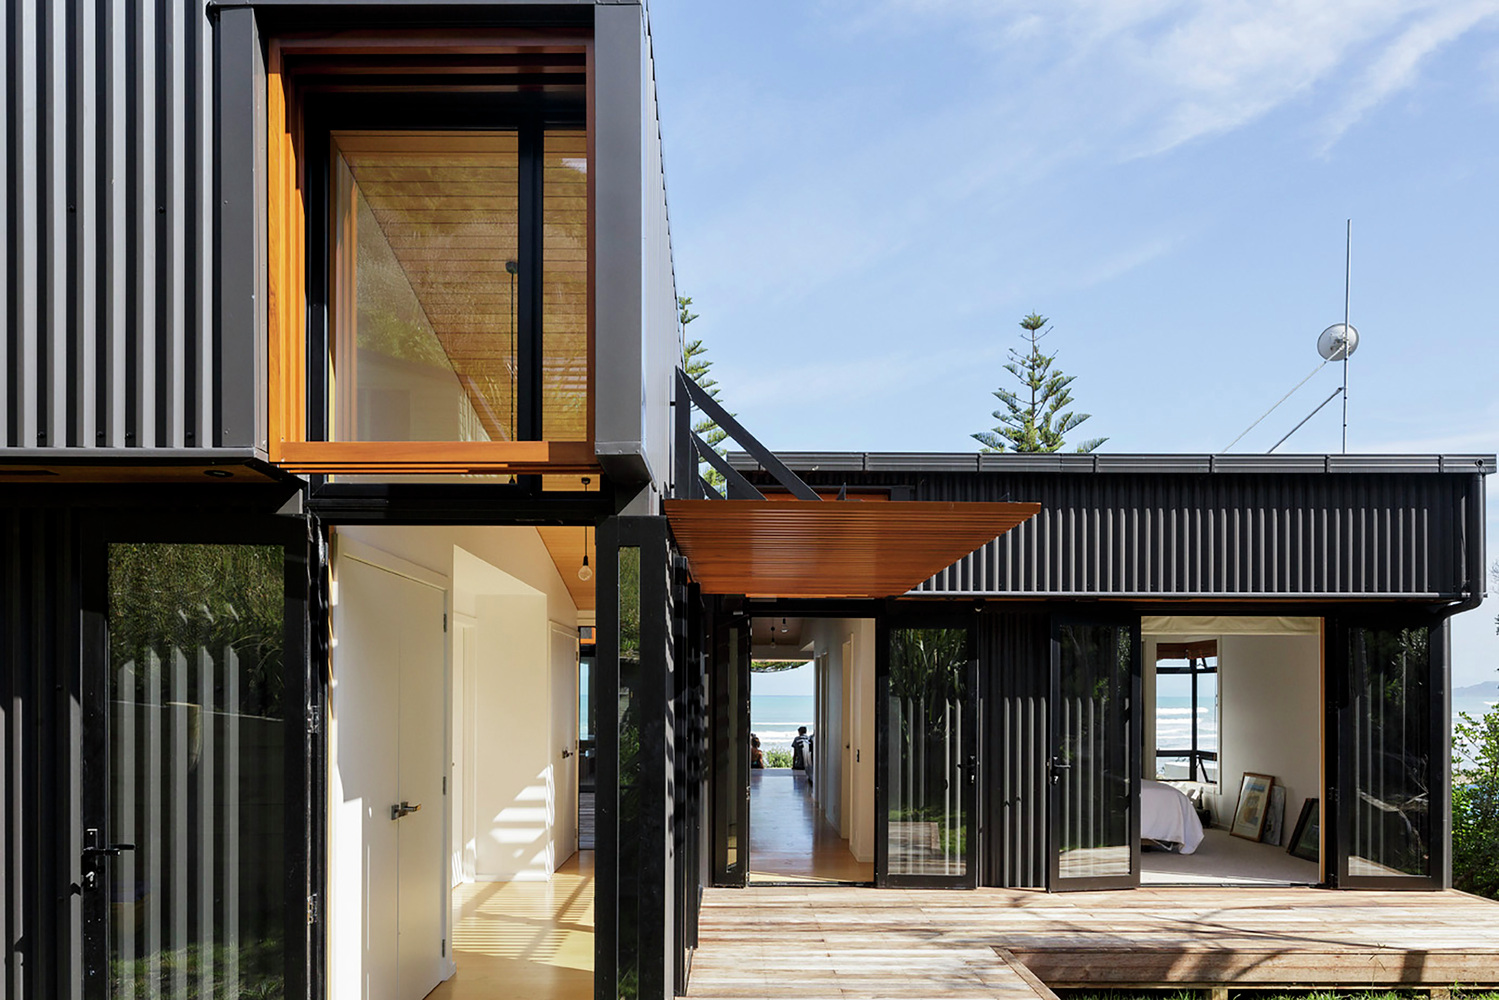 OffSET House by Irving Smith Jack Architects (via Lunchbox Architect)